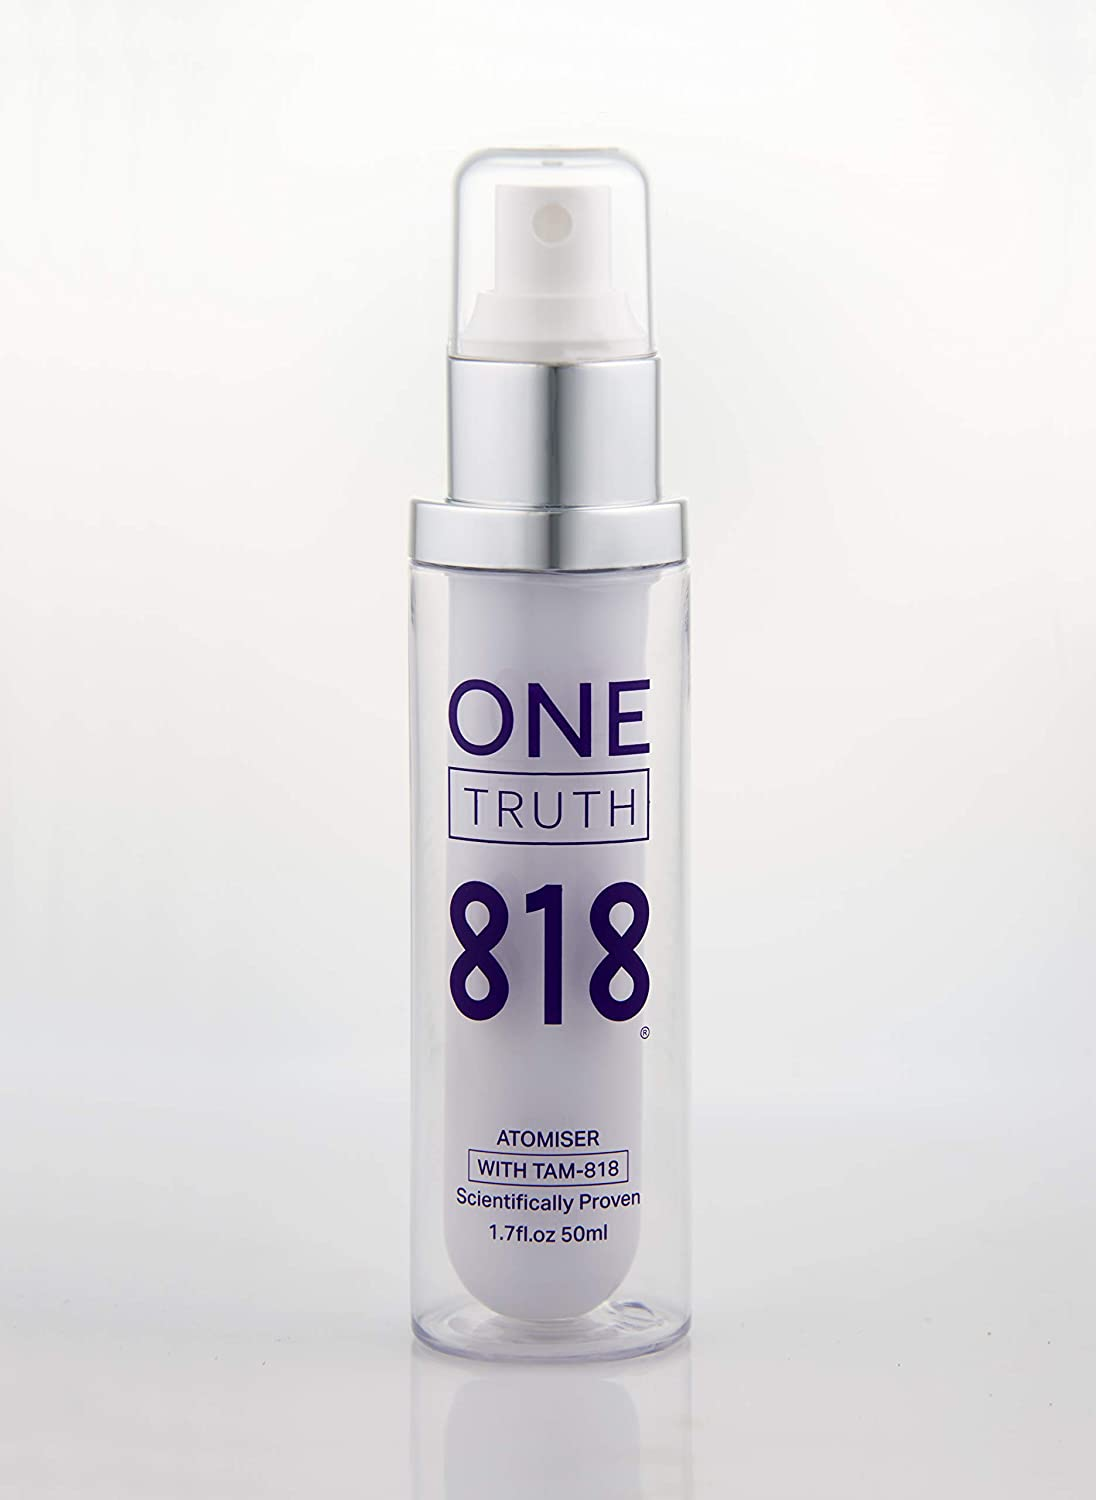 One Truth 818 Atomiser Spritz with TAM-818 | TELOMERASE | Activation | Anti-Aging